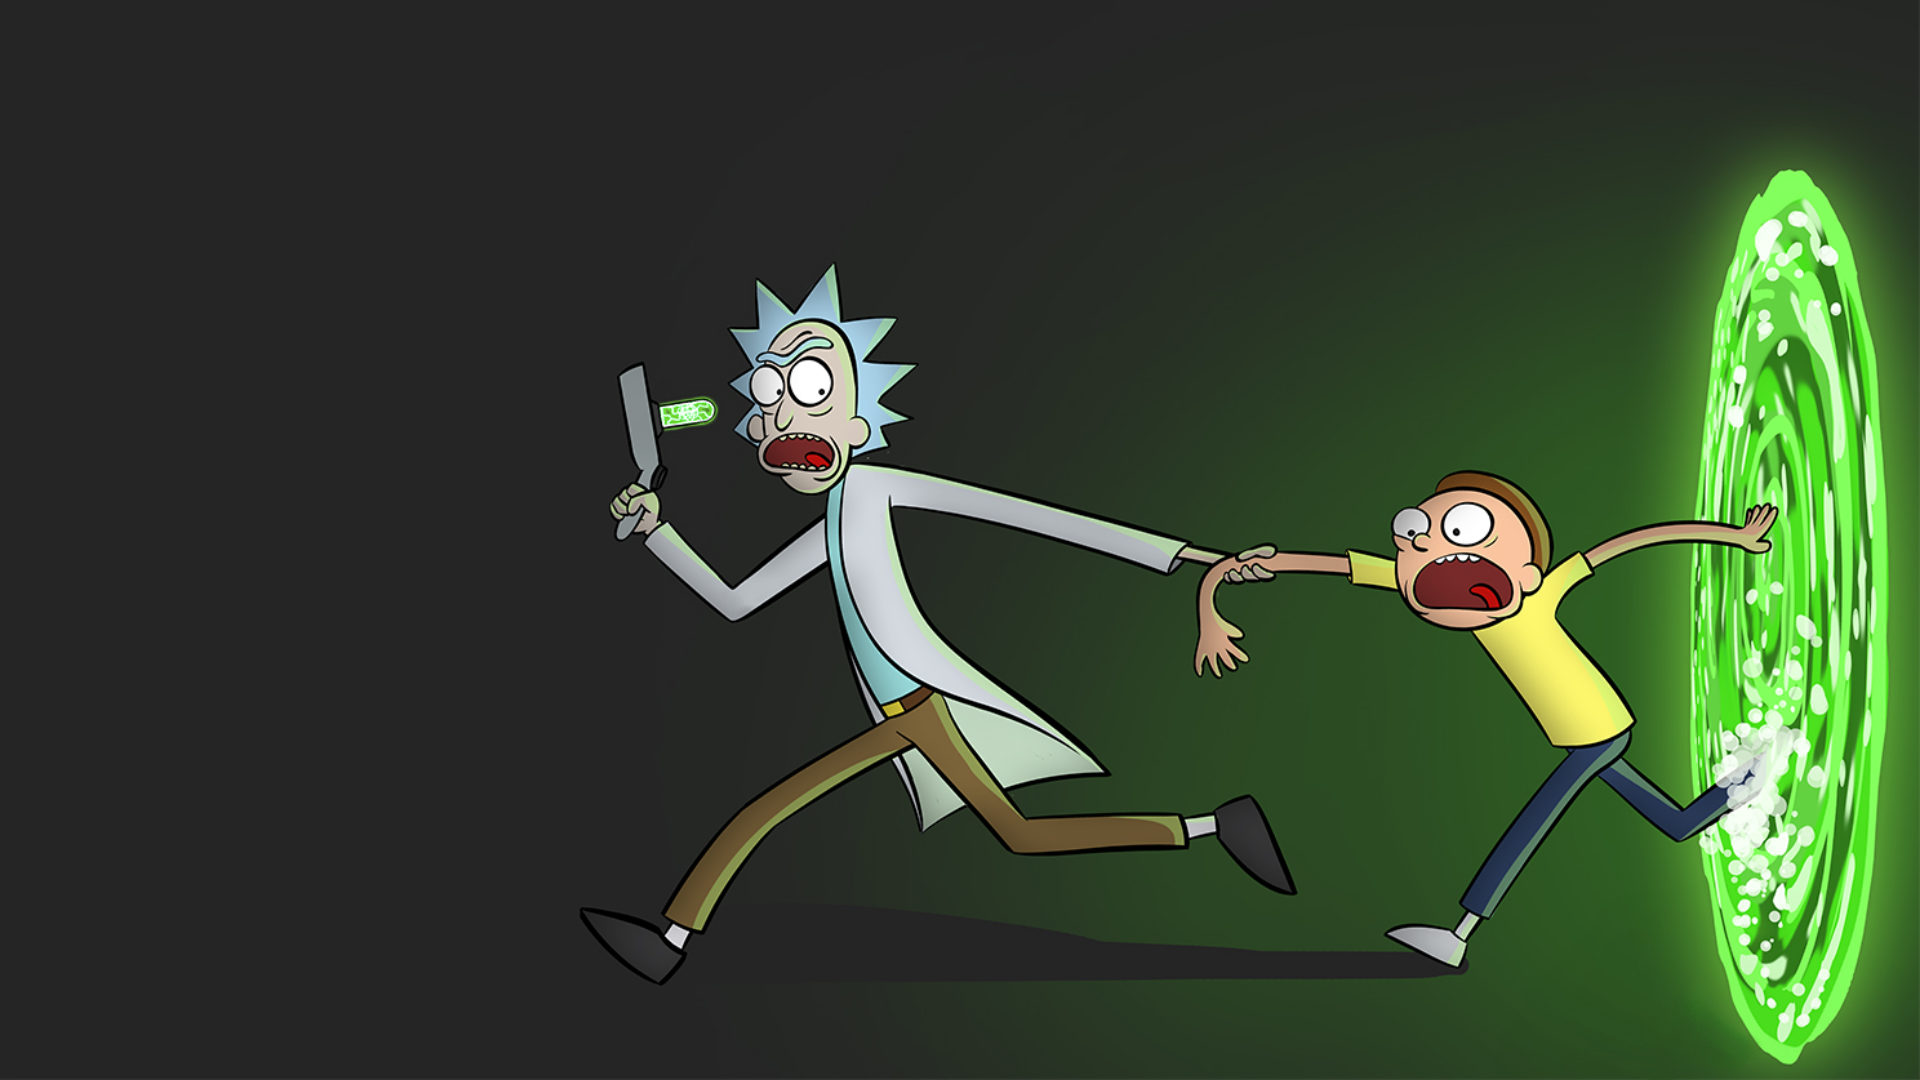 Tv Rick Sanchez Morty Smith Rick And Morty Wallpaper In 2020 Morty Smith Cartoon Wallpaper Rick And Morty Season